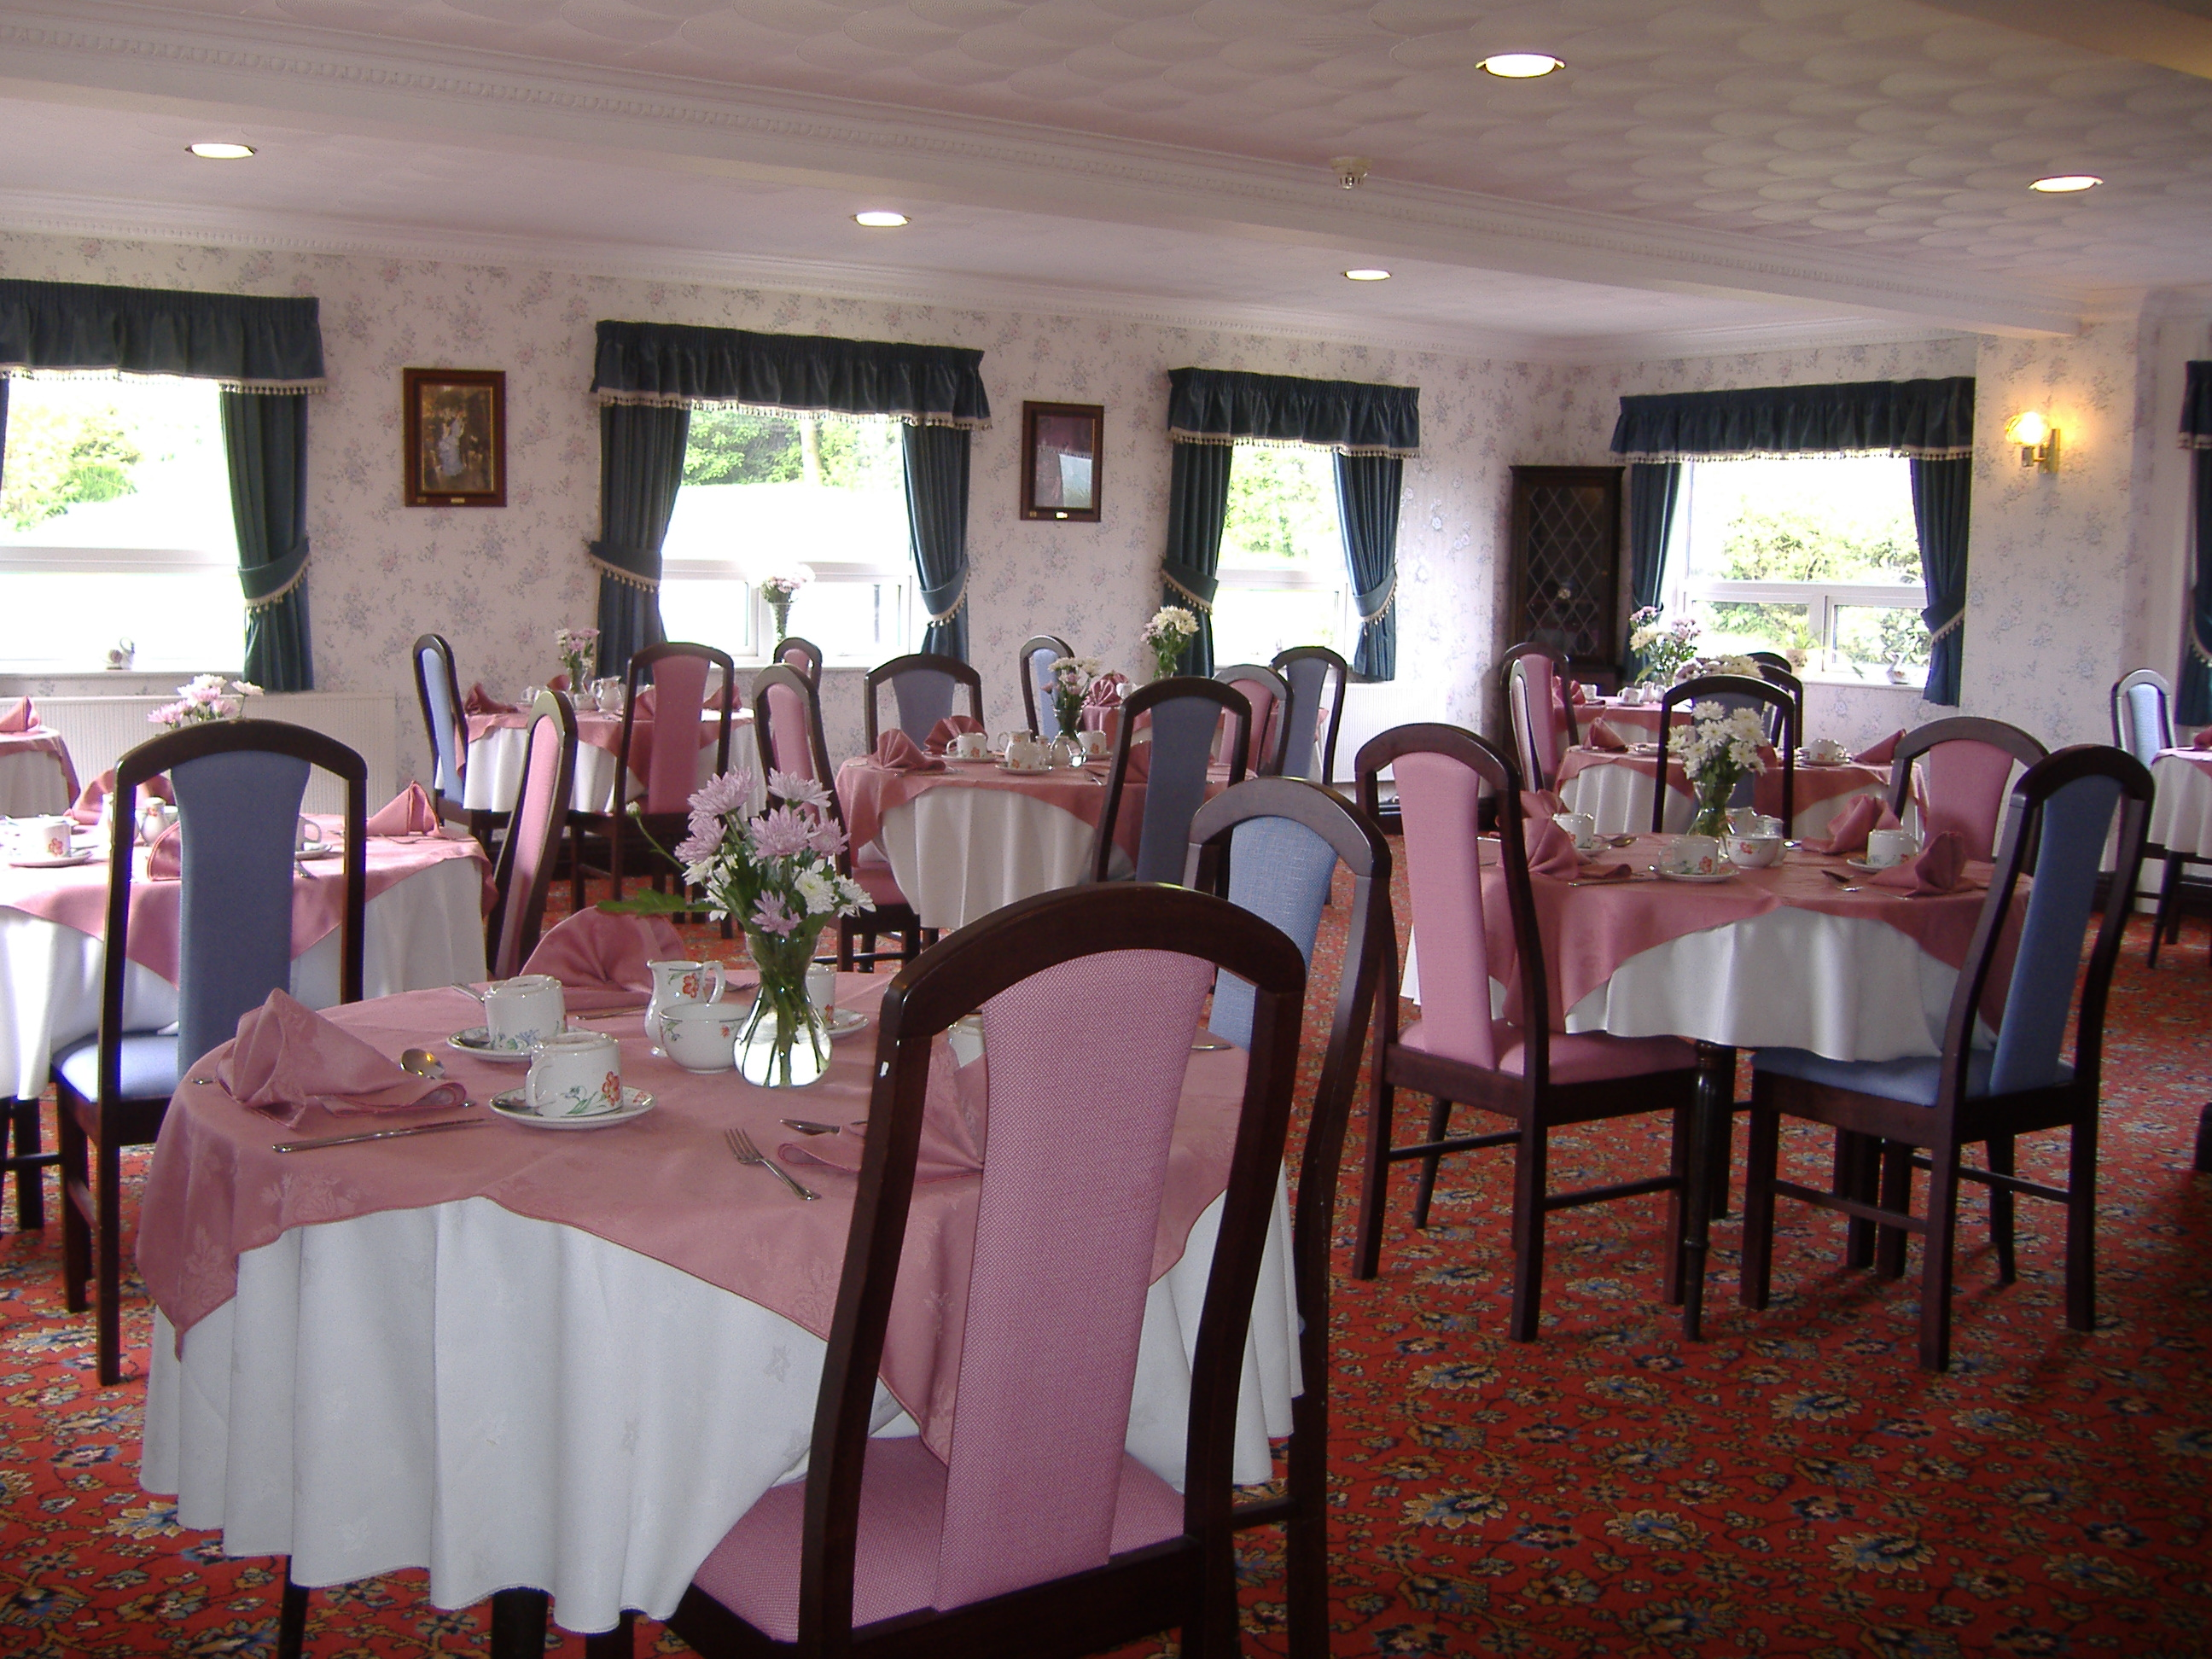 Dining Room at Queens Lodge Nursing Home Blackburn Lancashire England